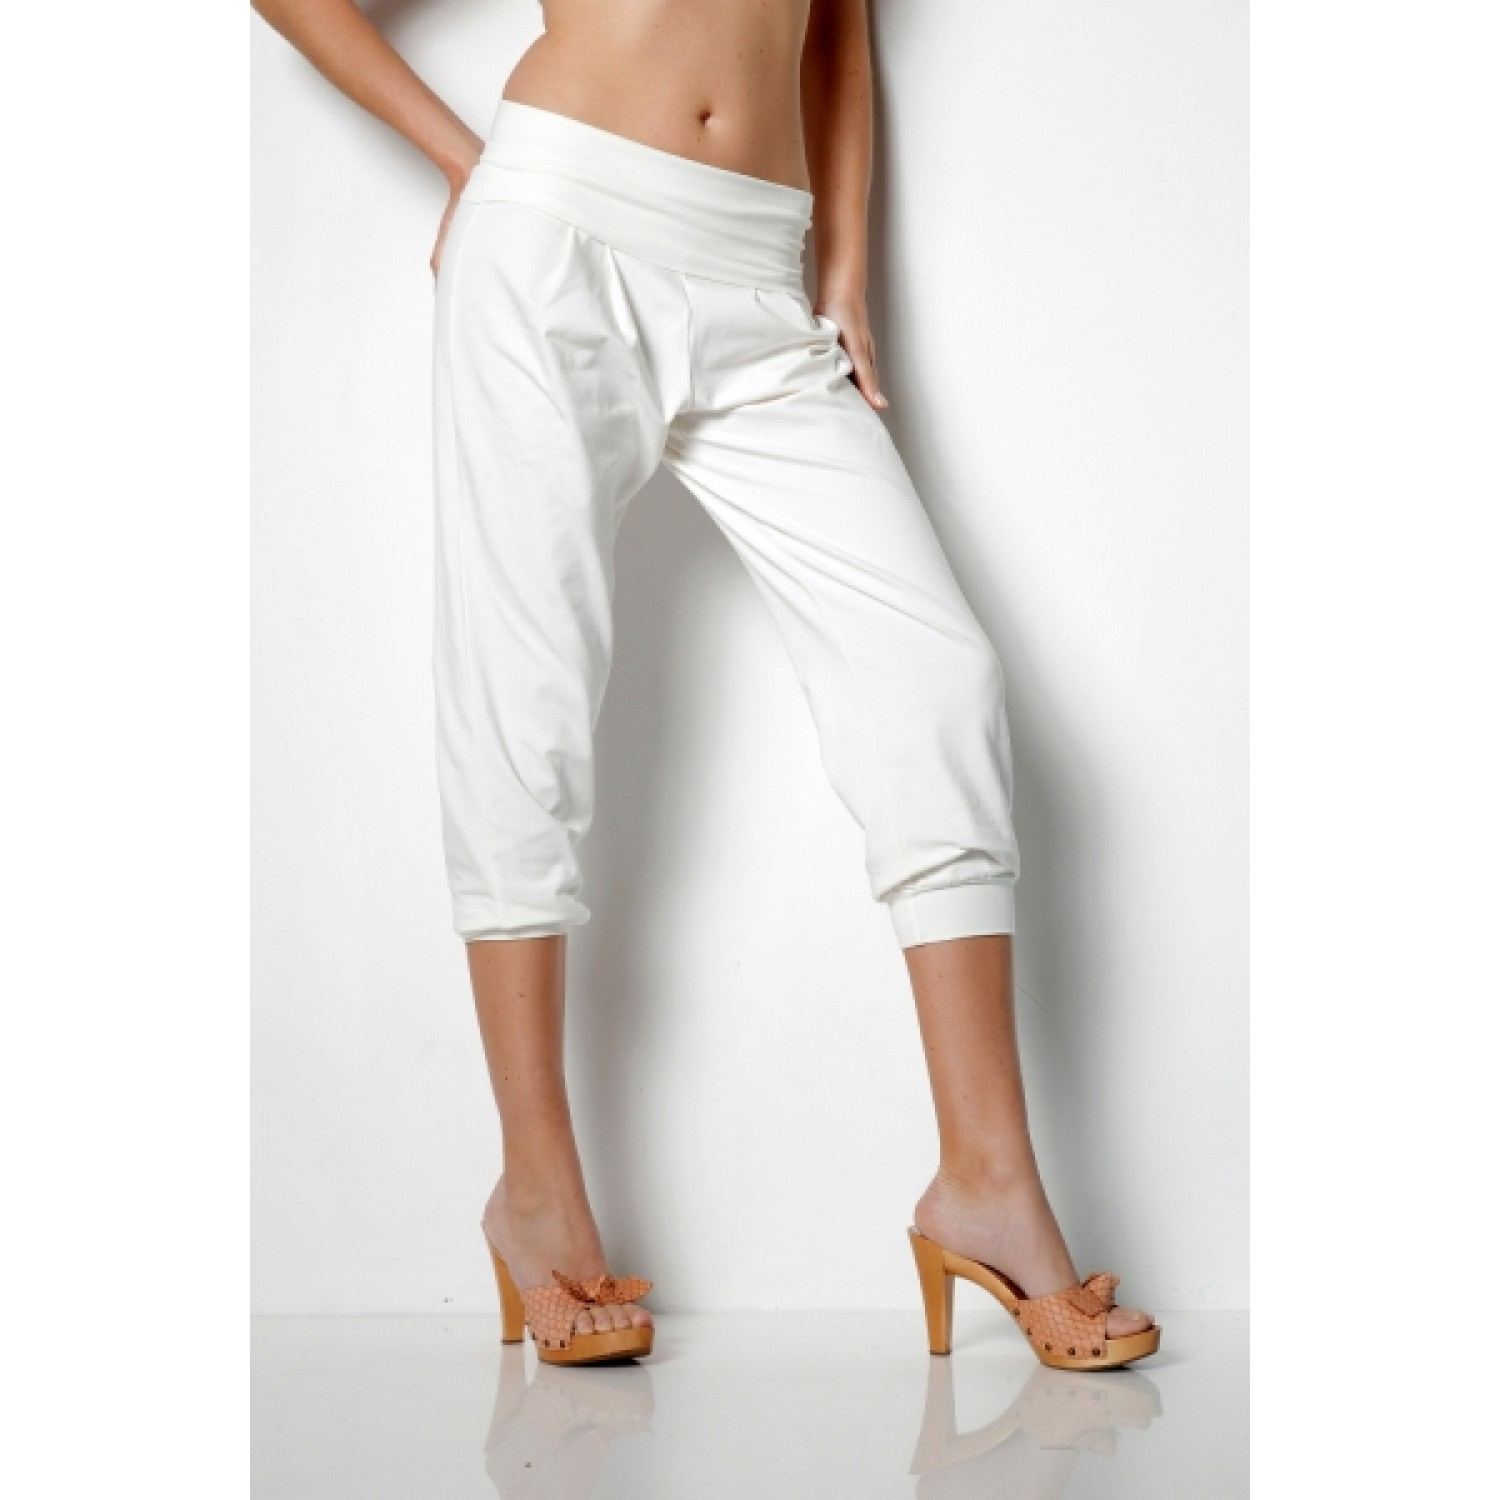 Eco Harem Pants in Sarouel Style - organic cotton